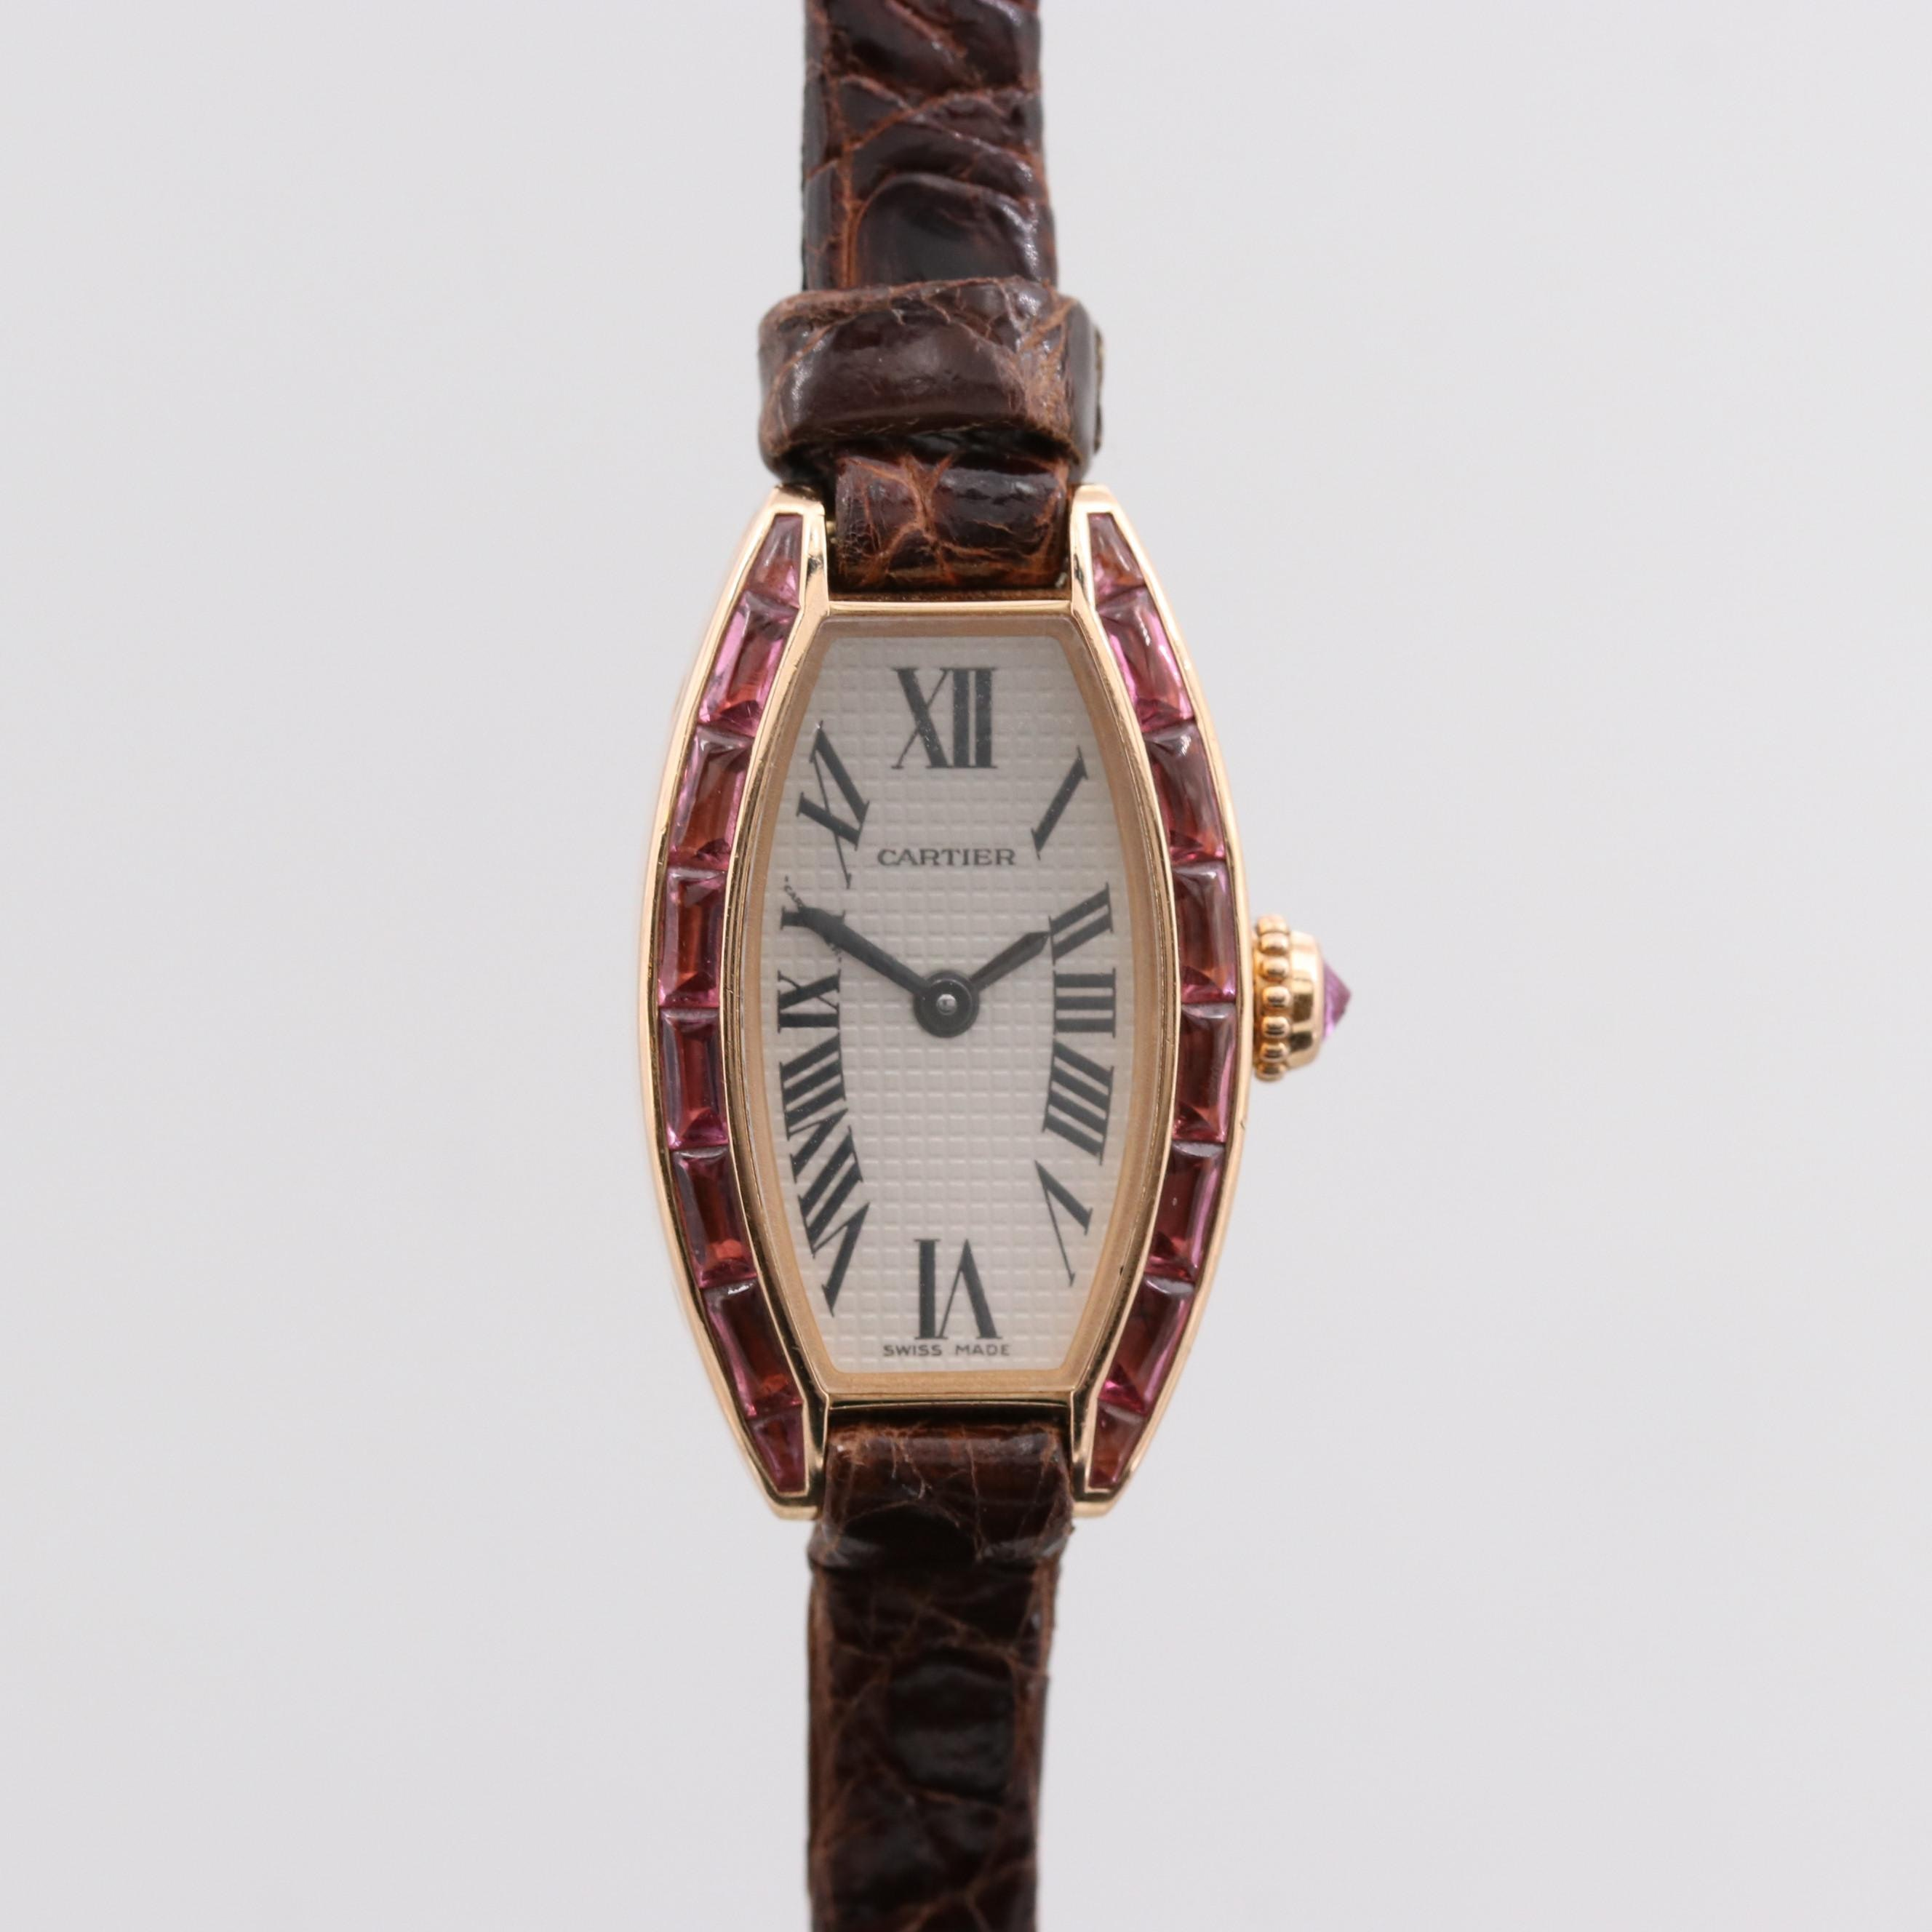 Cartier Lanières Special Edition 18K Rose Gold Wristwatch With Pink Tourmaline